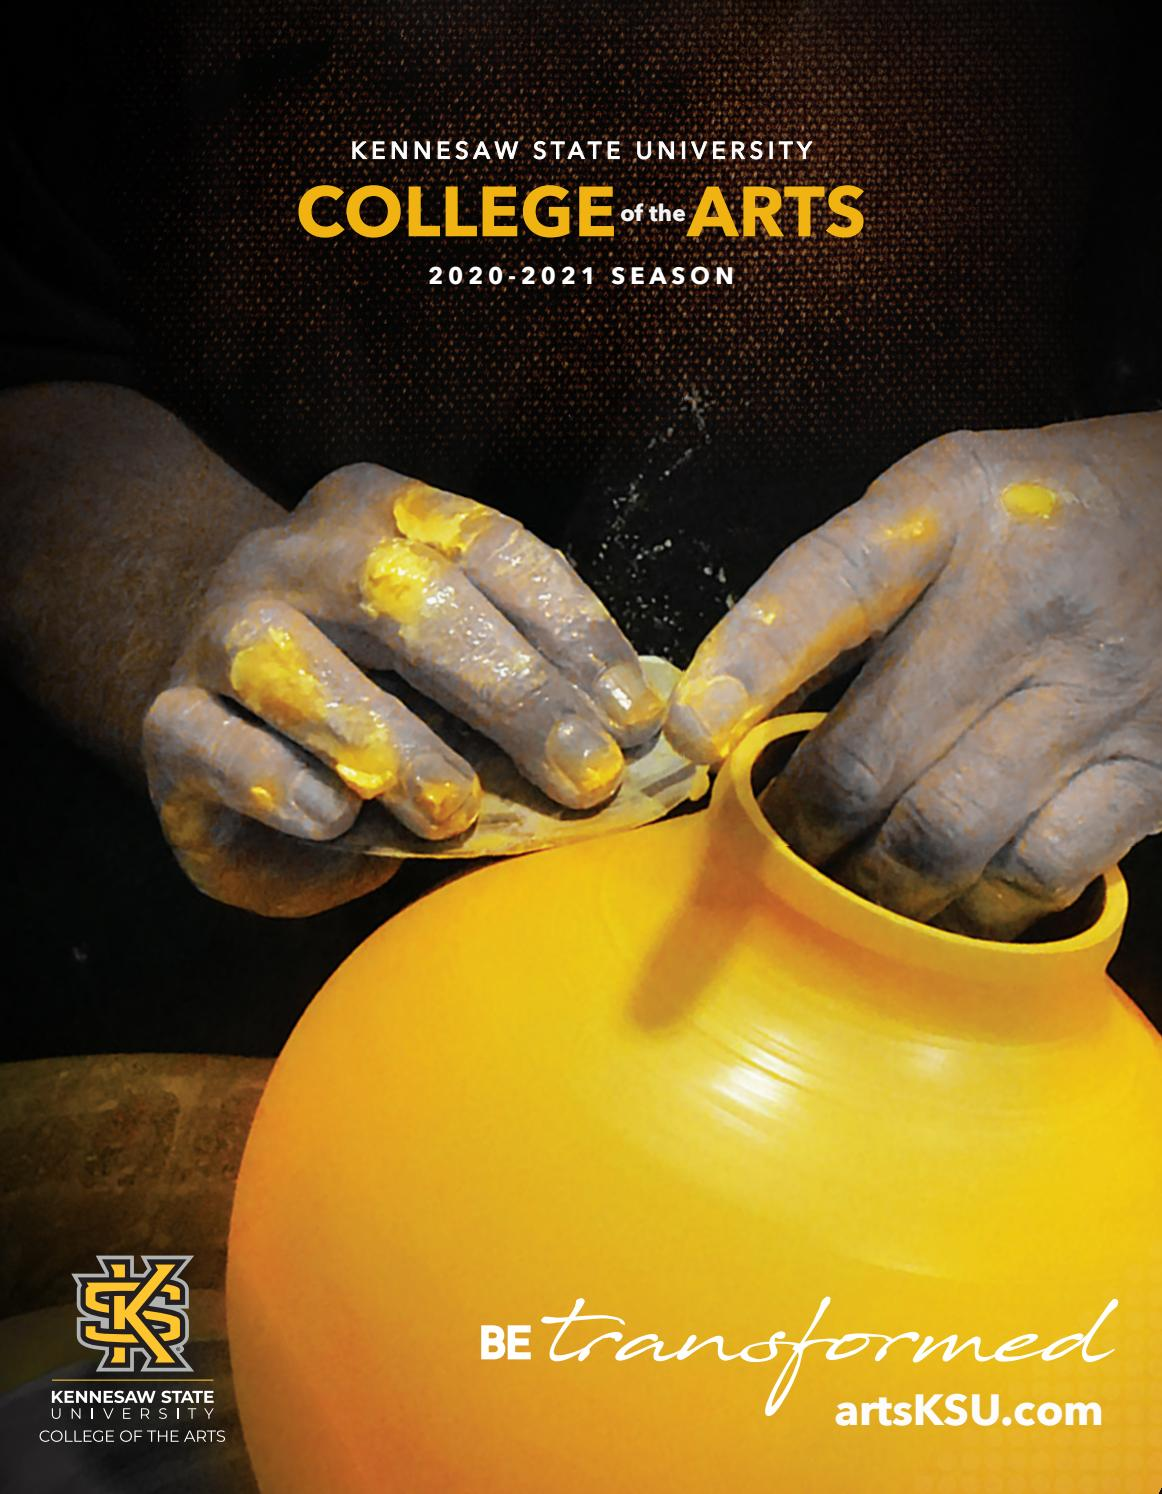 Kennesaw State University College Of The Arts 2020 2021 Season Brochure By Kennesaw State University College Of The Arts Issuu